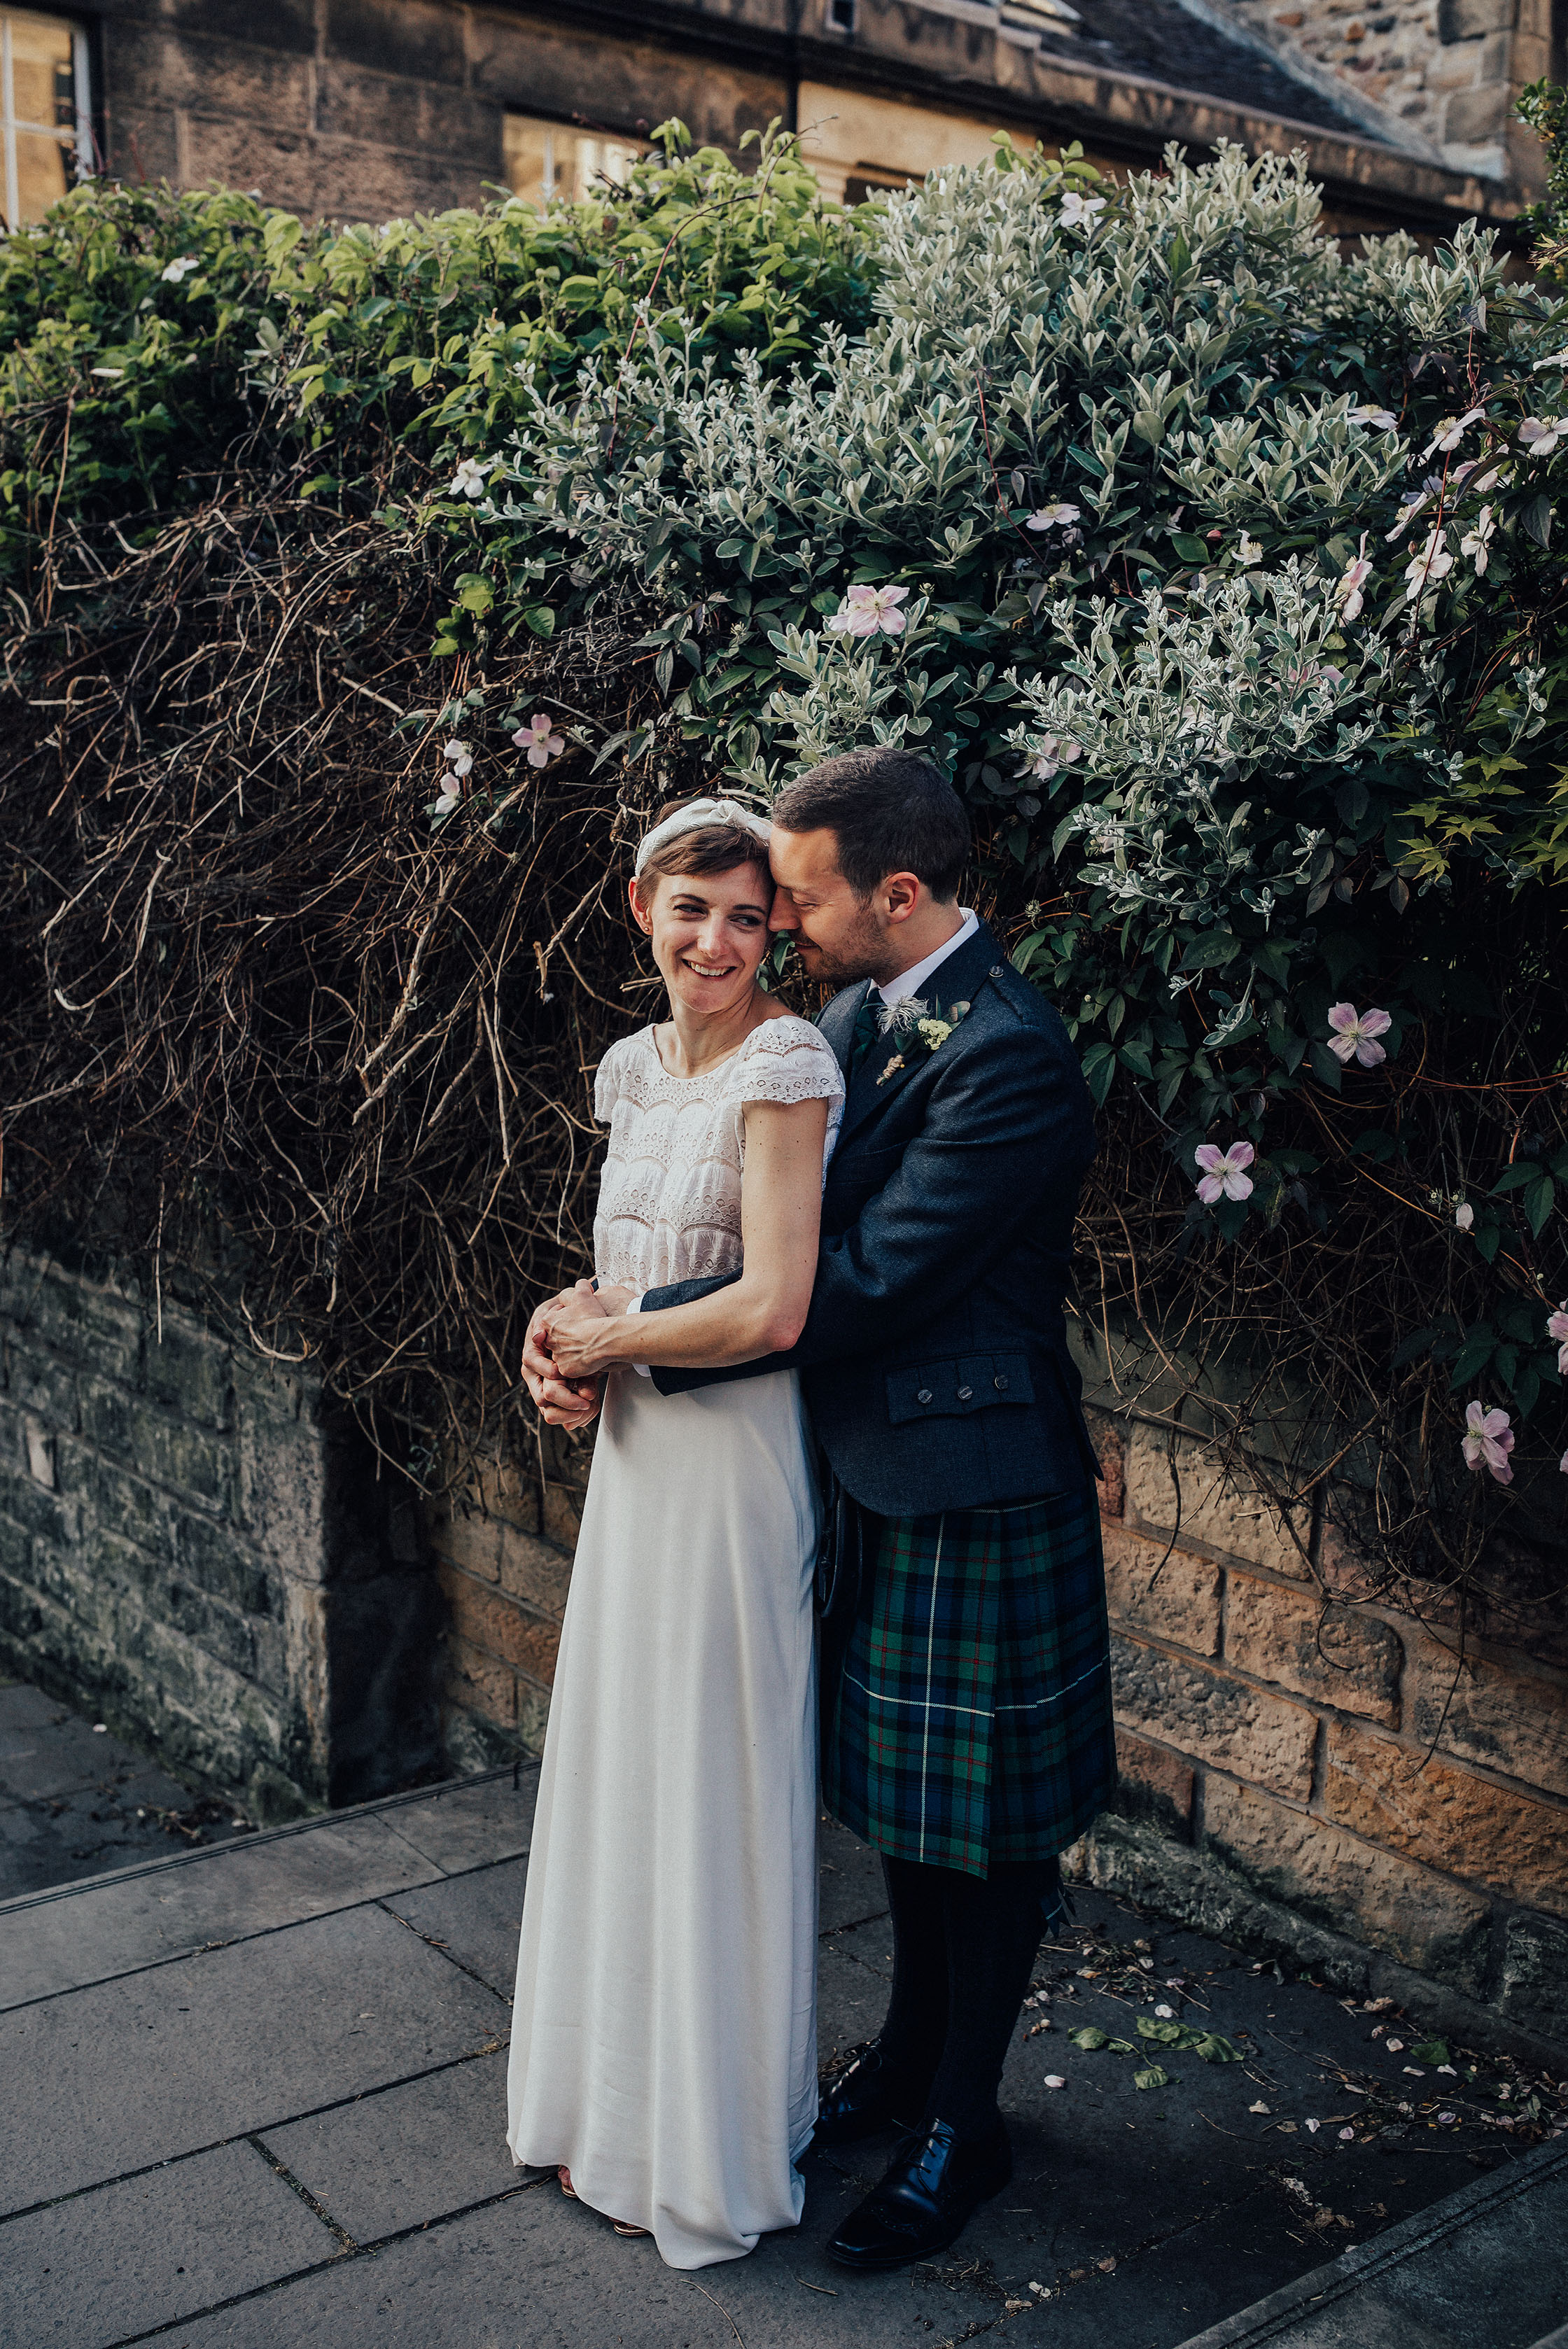 TIMBERYARD_EDINBURGH_WEDDING_PJ_PHILLIPS_PHOTOGRAPHY_189.jpg